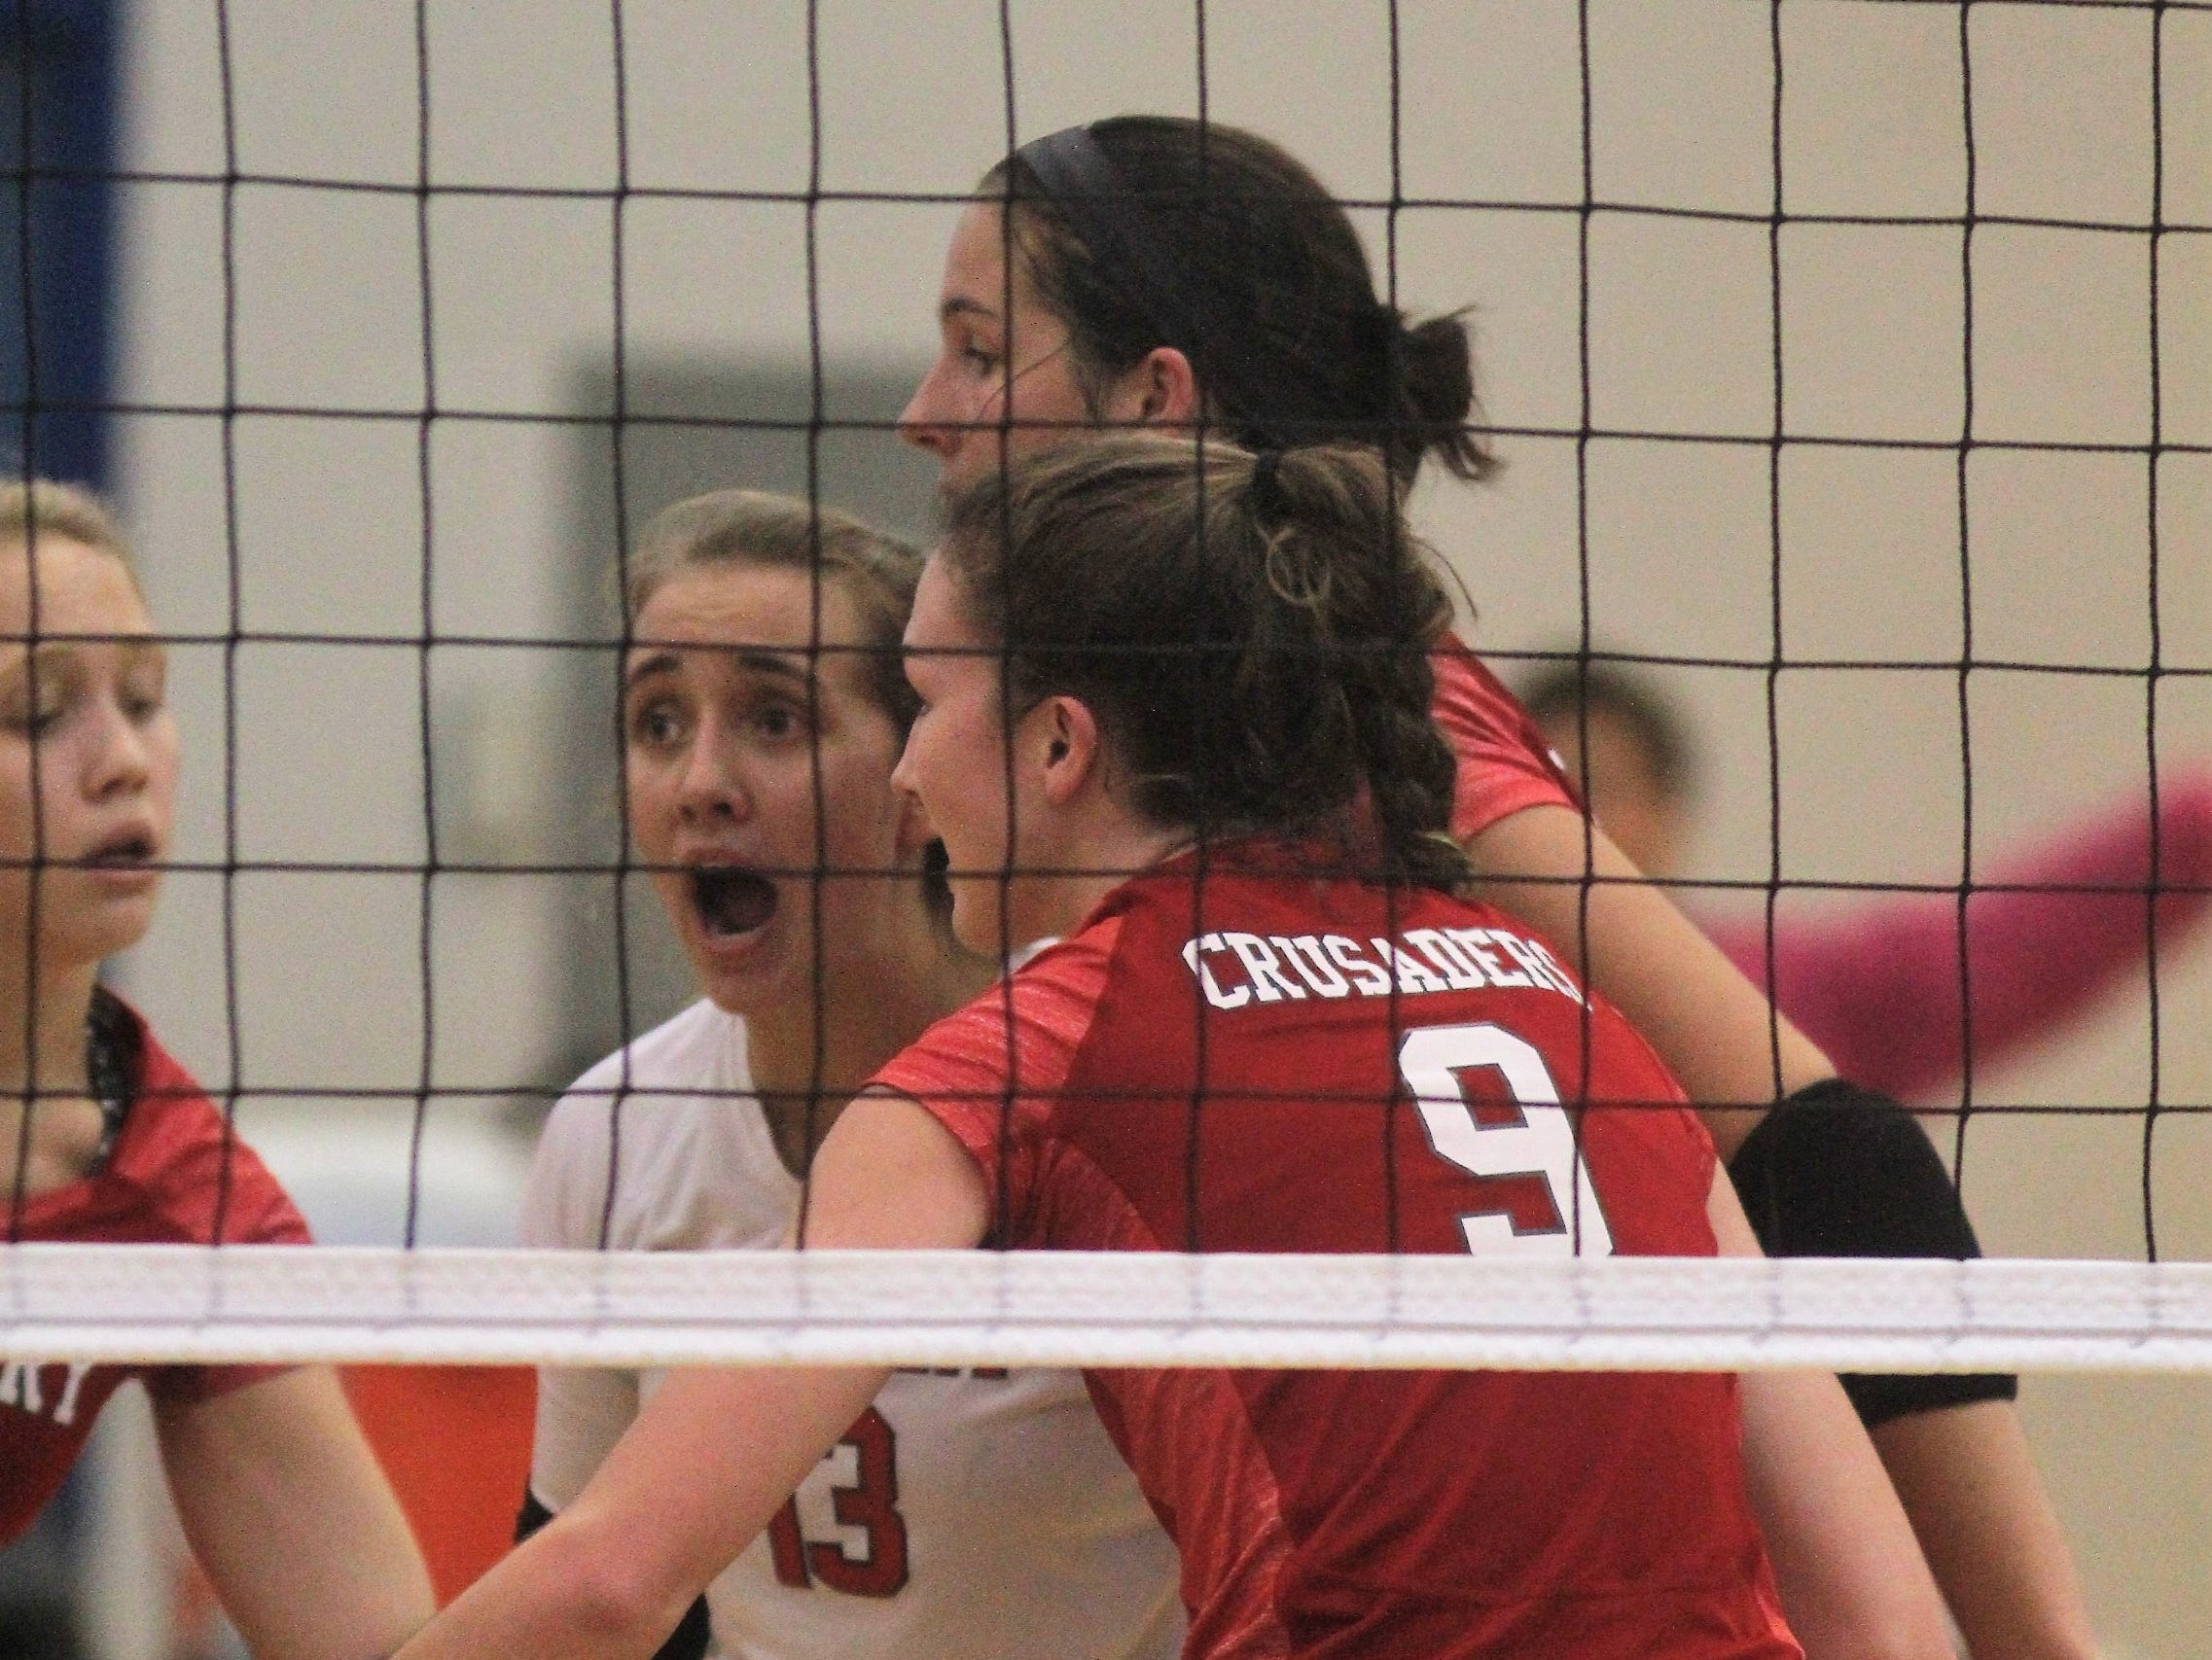 St. Henry Crusaders celebrate a point during St. Henry's 3-0 sweep of North Oldham in the first round of the KHSAA state volleyball tournament Oct. 26, 2018 at Valley High School, Louisville, KY.